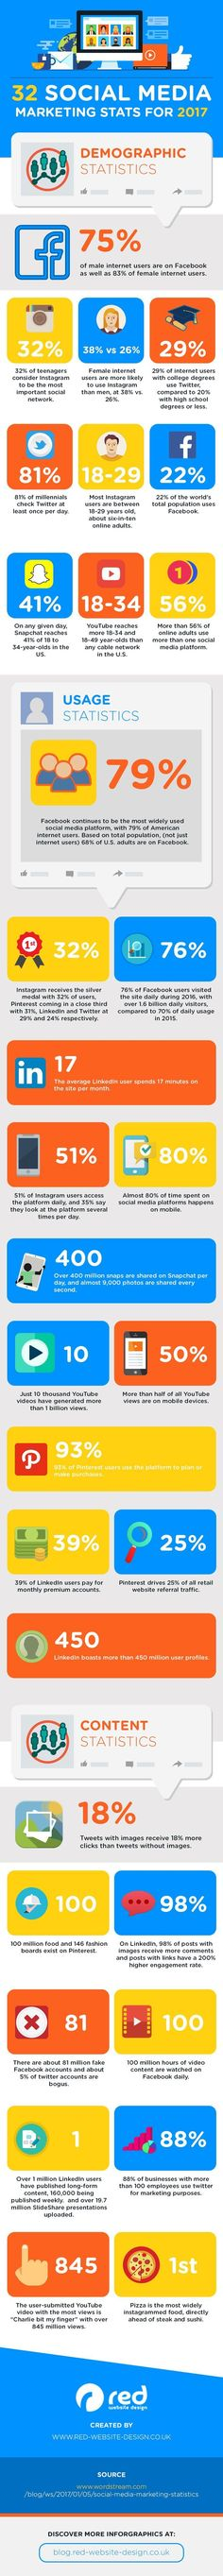 30+ Essential Social Media Marketing Statistics for 2017 - infographic Find more stuff: dynamicwebmarketi... http://itz-my.com